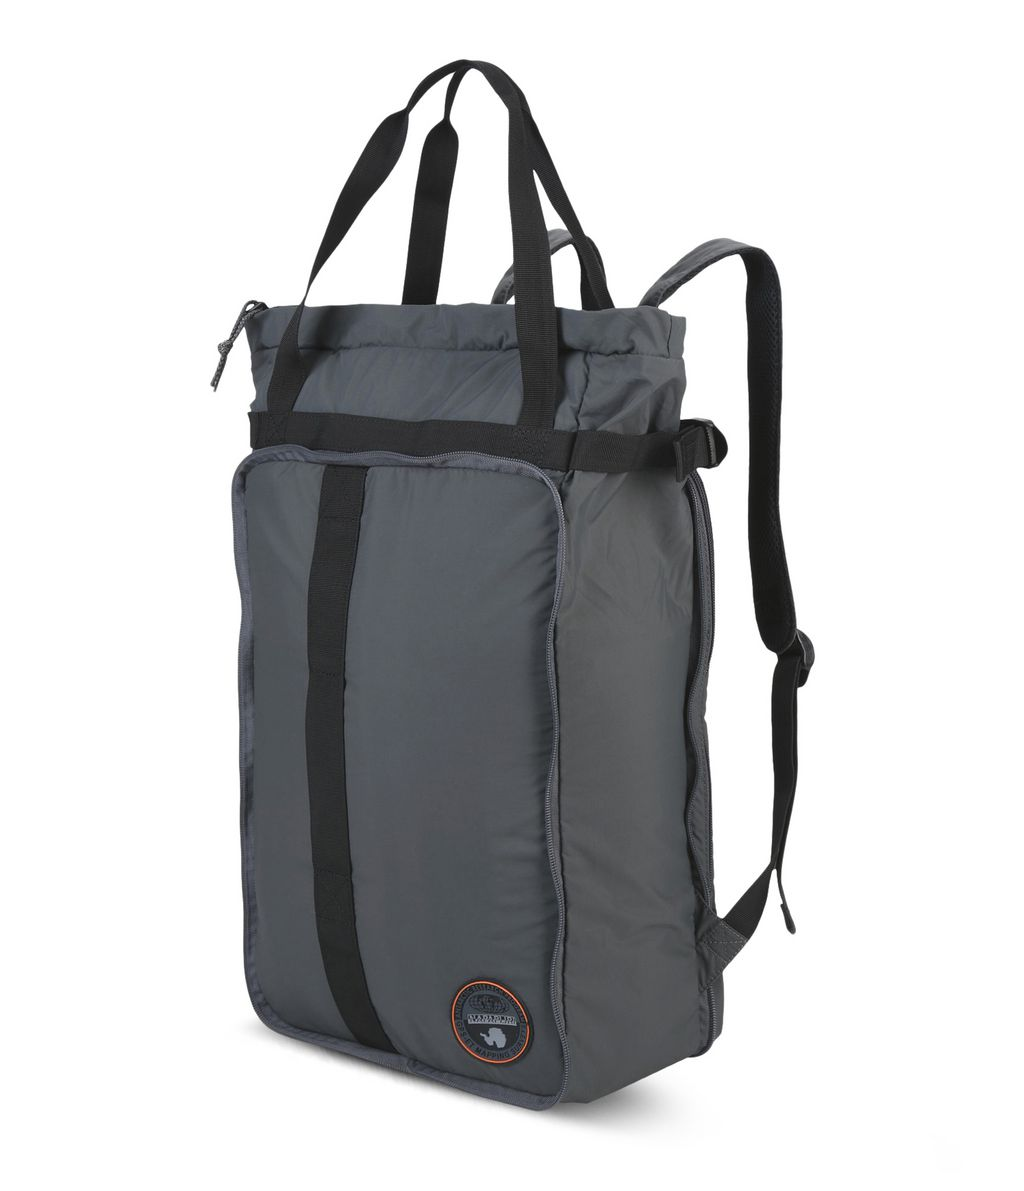 NAPAPIJRI HUDSON PC BAG  LAPTOP BAG,LEAD